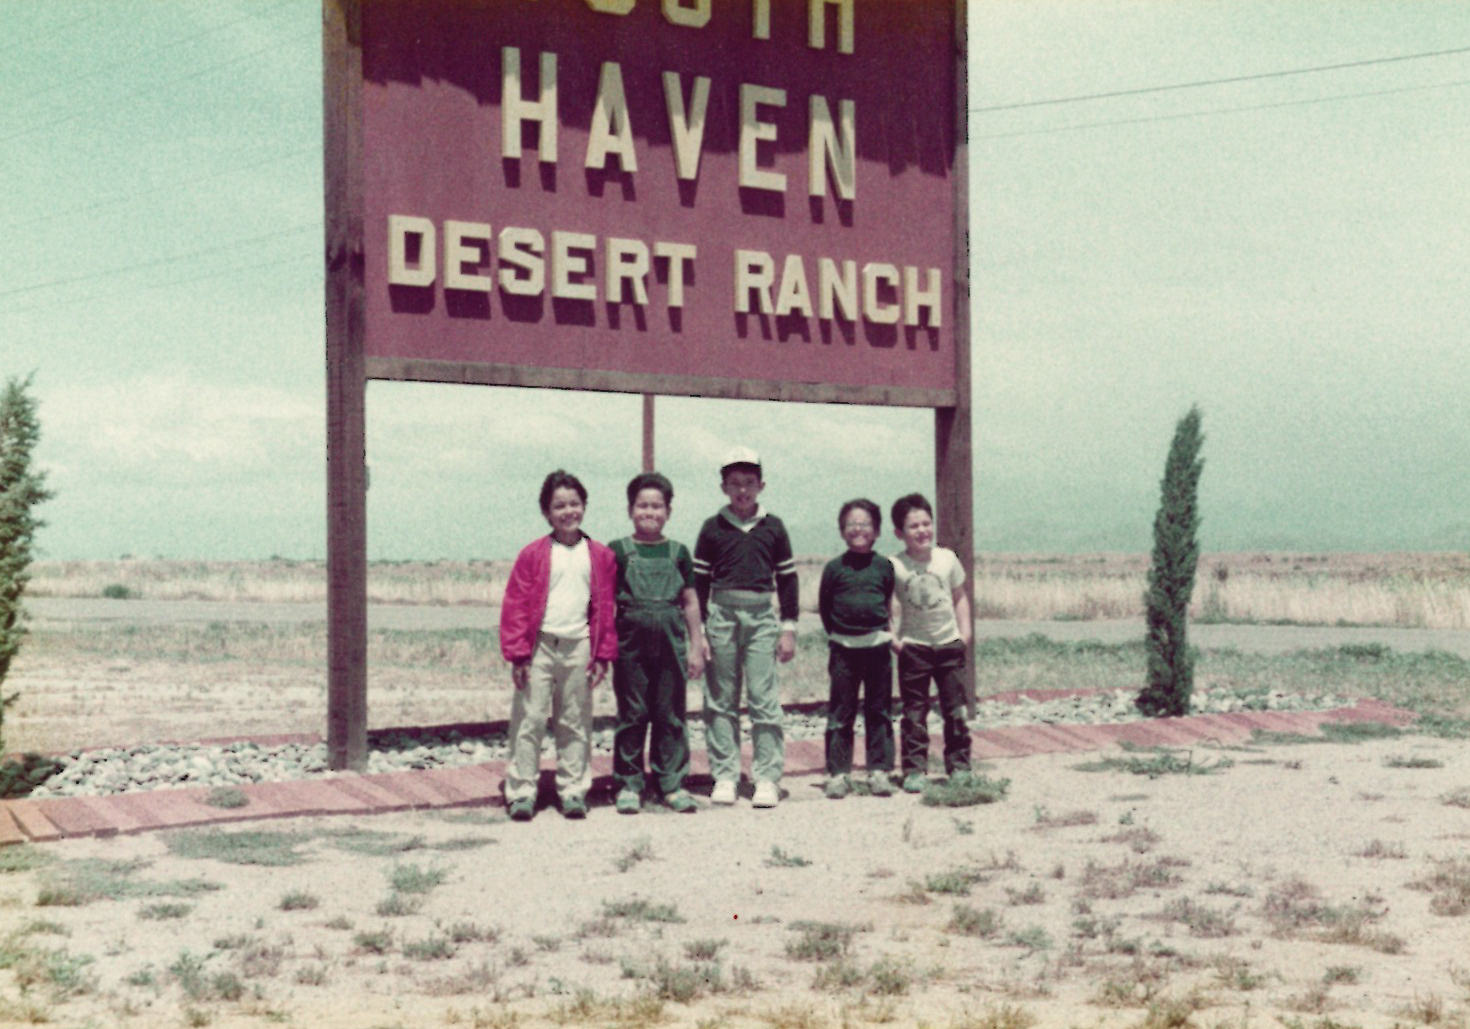 """A team of boys enjoying their time at the """"Desert Ranch"""" in Picacho, Arizona. The address was later changed to Eloy, Arizona, but the location is the same."""